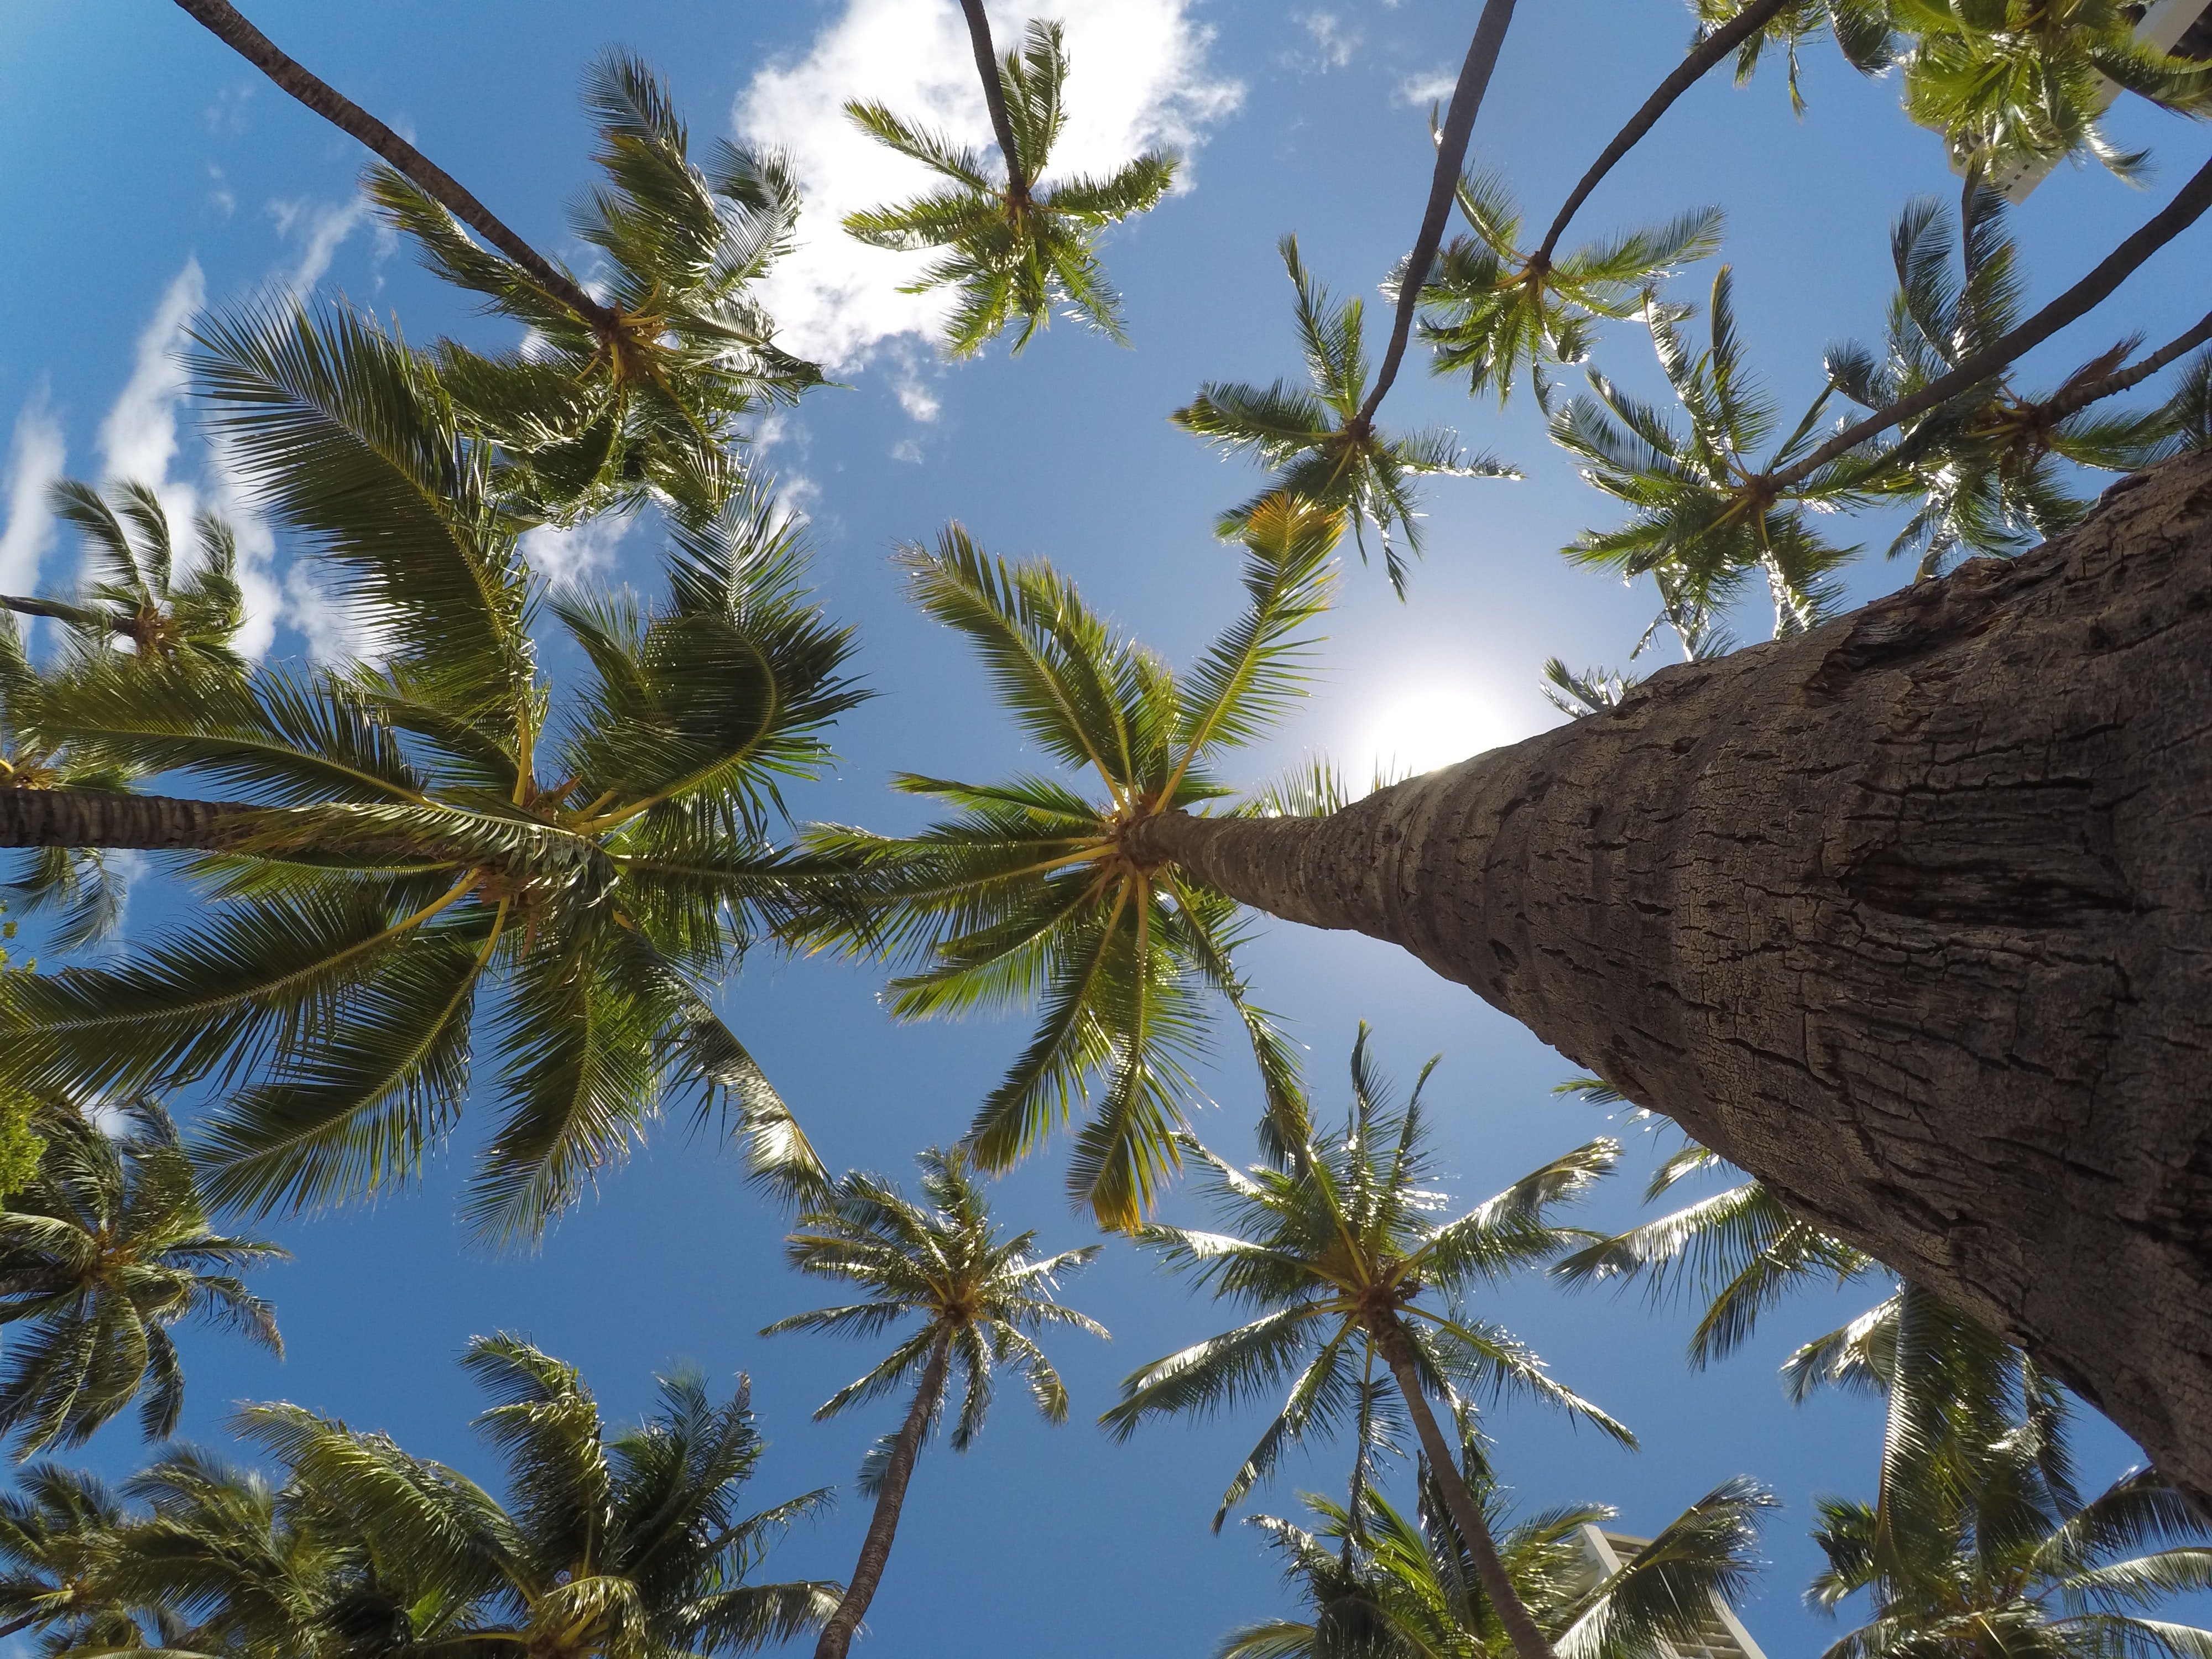 Looking up at a field of palm trees with the sun behind them in O'ahu